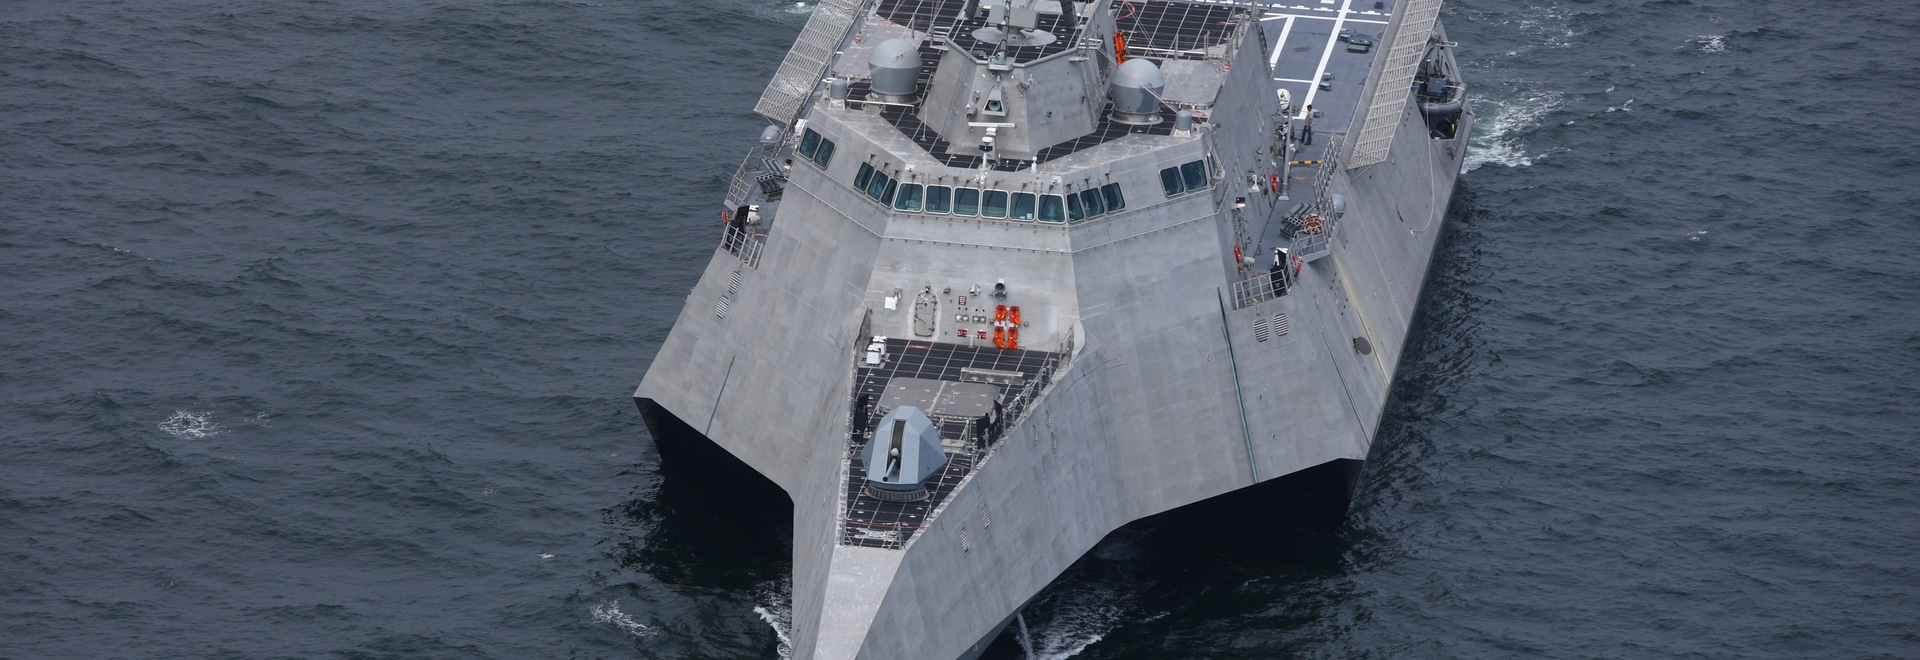 "The Independence-variant littoral combat ship is a 421'6""x103.7' high-speed, agile, shallow draft, focused-mission surface combatant. Austal USA photo"